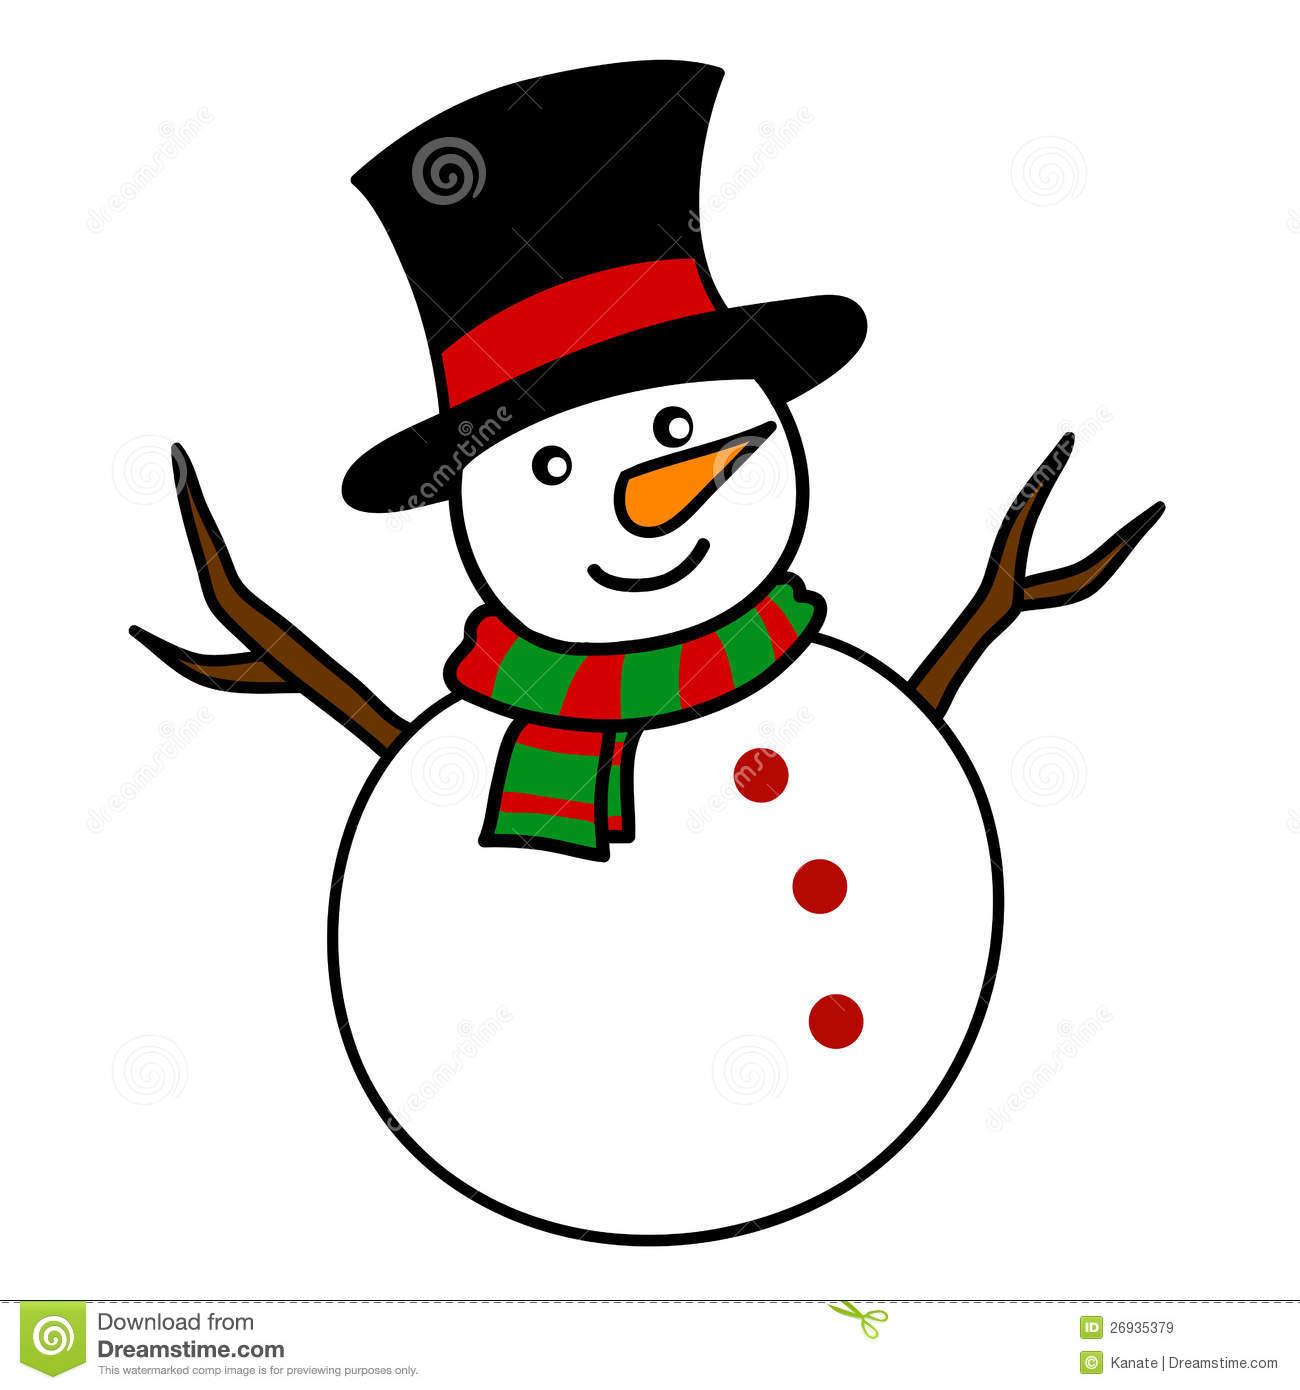 Christmas snowman cartoon royalty free stock images - Bonhomme de neige en pompon ...